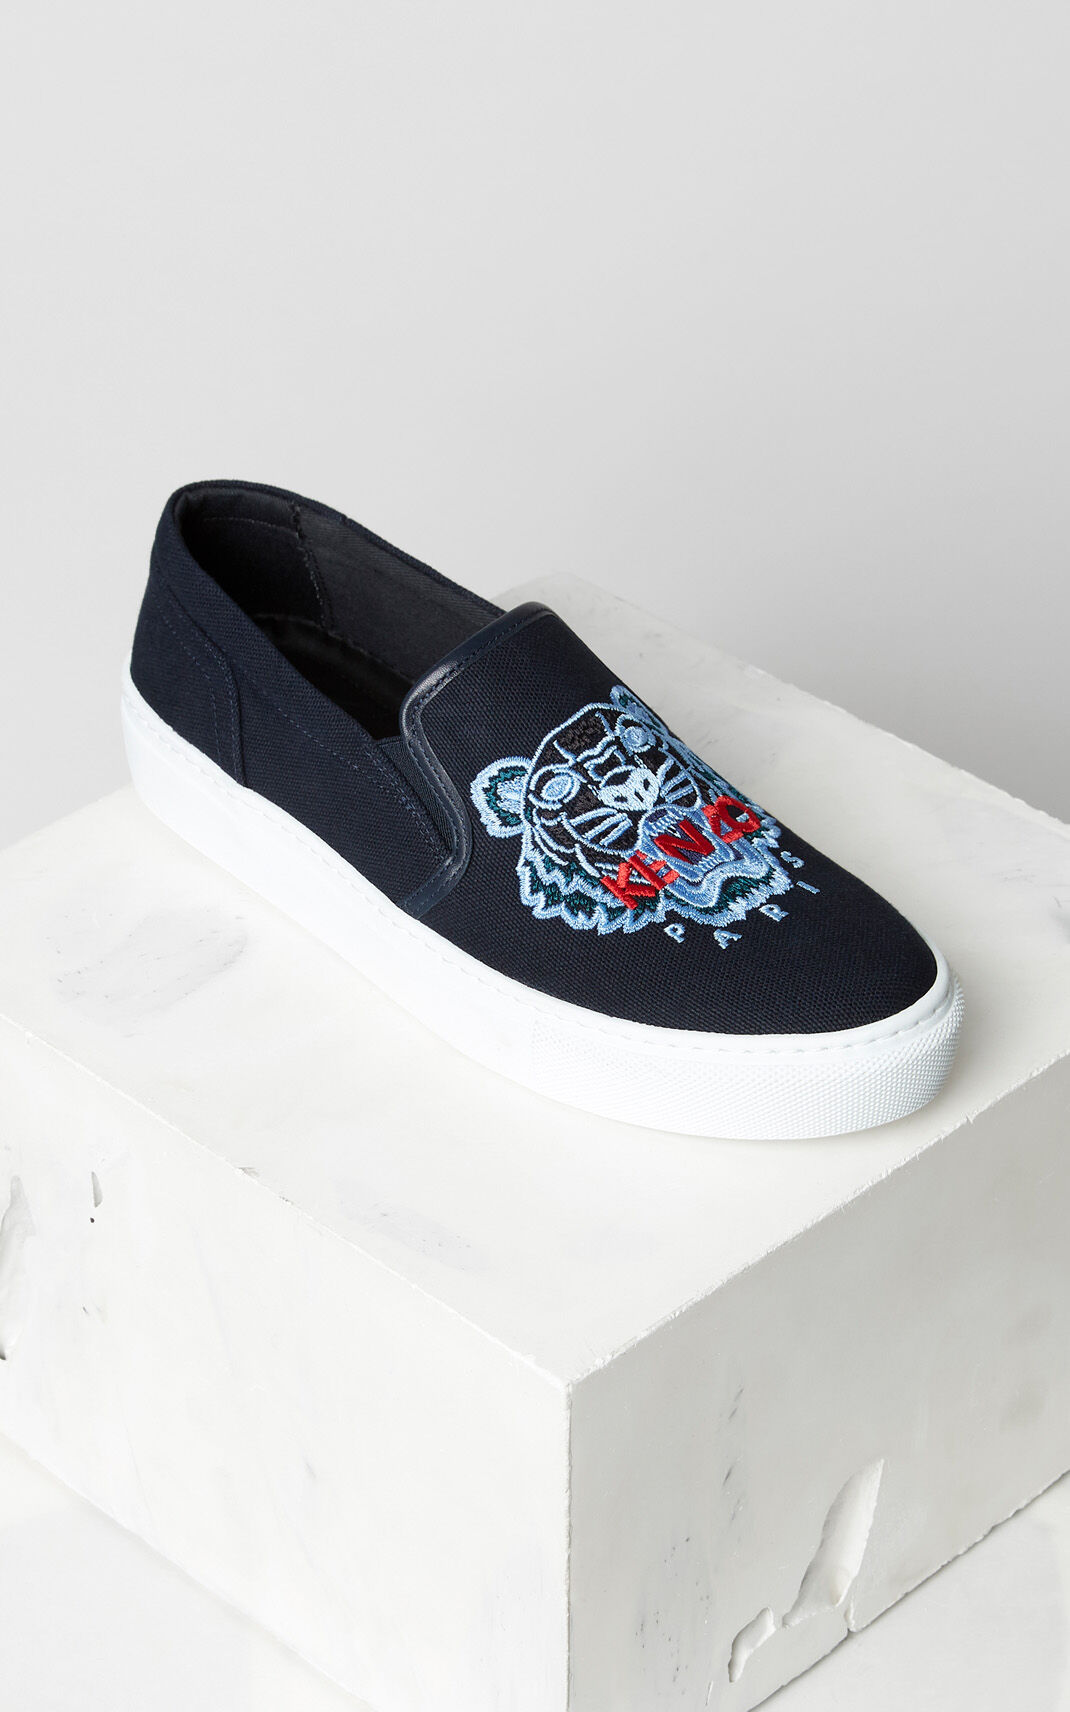 Slip K Tiger Shoes Skate Accessories On For Kenzo sdtrhQC